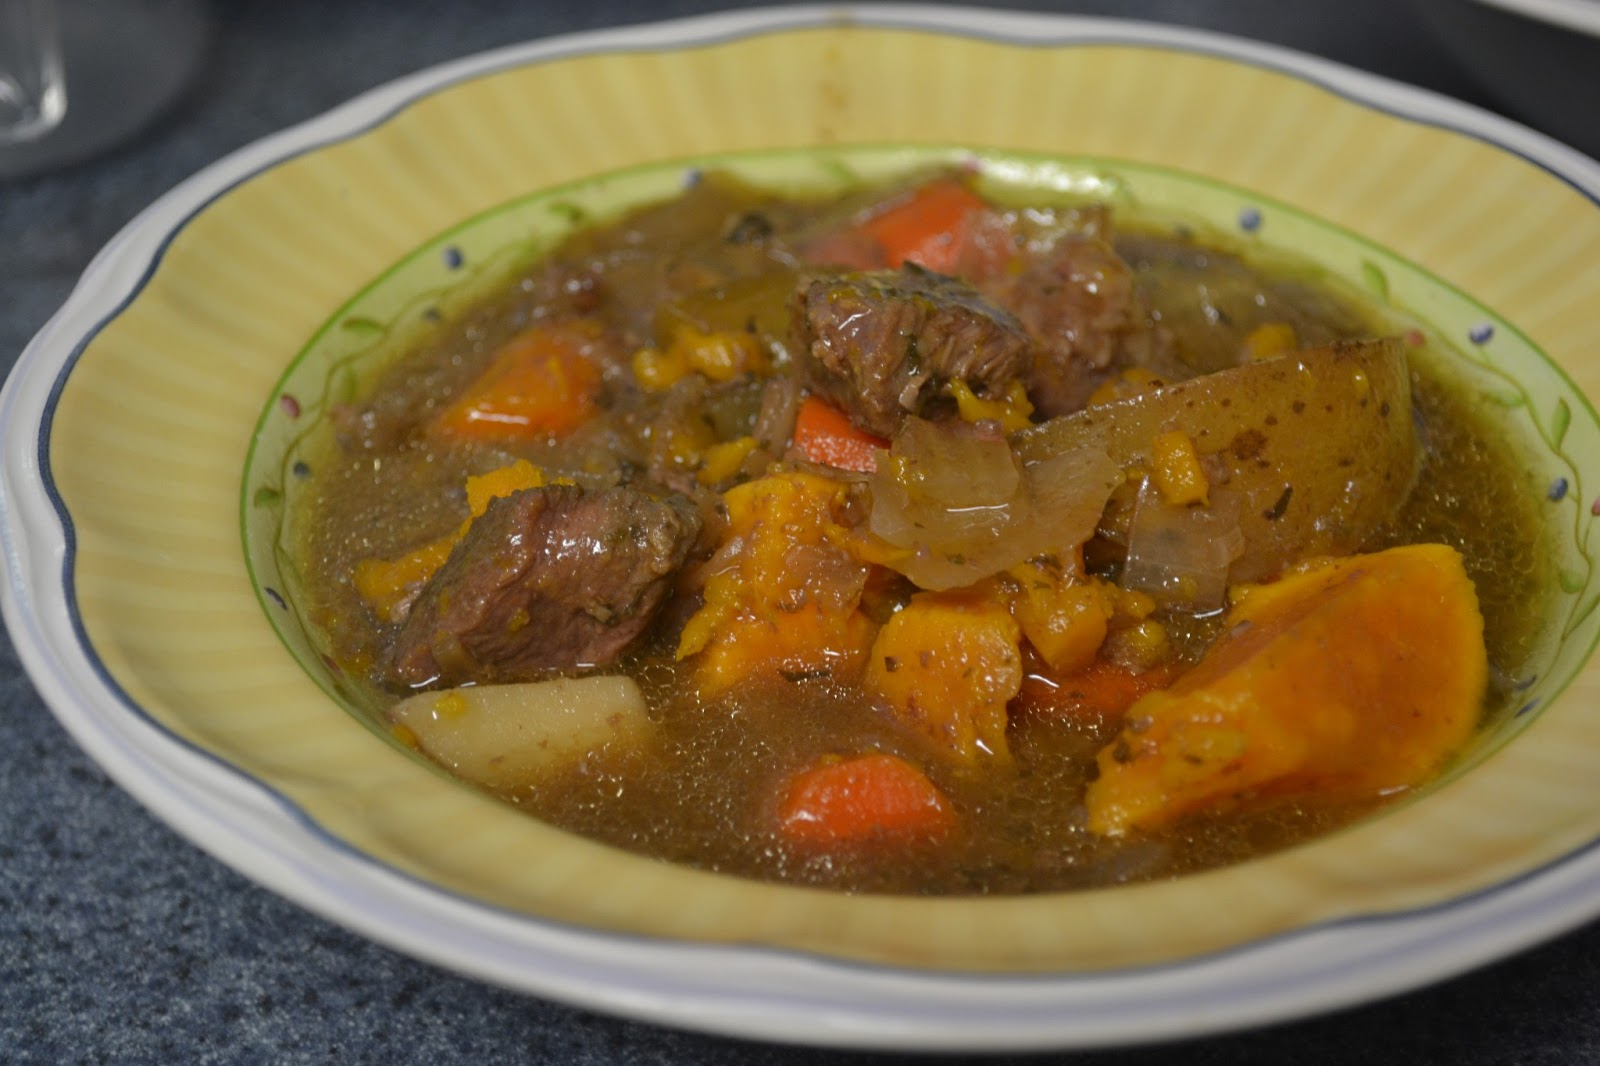 Beef stew from the crock pot, filling and tasty for